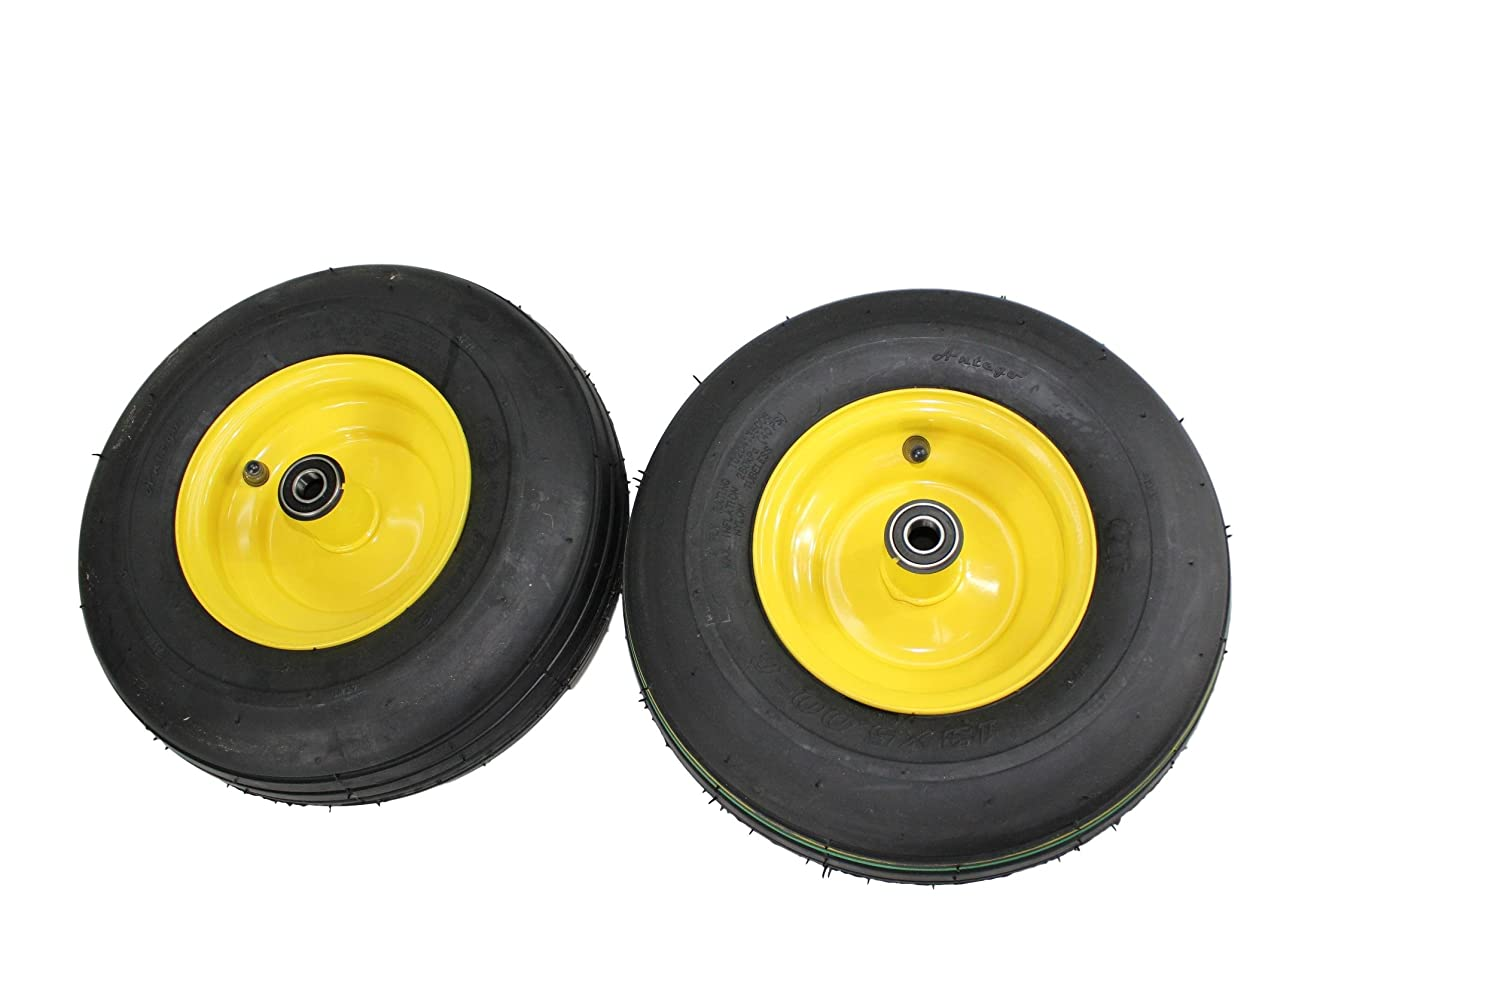 Antego 13x5.00-6 Tires & Wheels 4 Ply for Lawn & Garden Mower Turf Tires (Set of 2) A6325740060204135006-B2 ATW-002